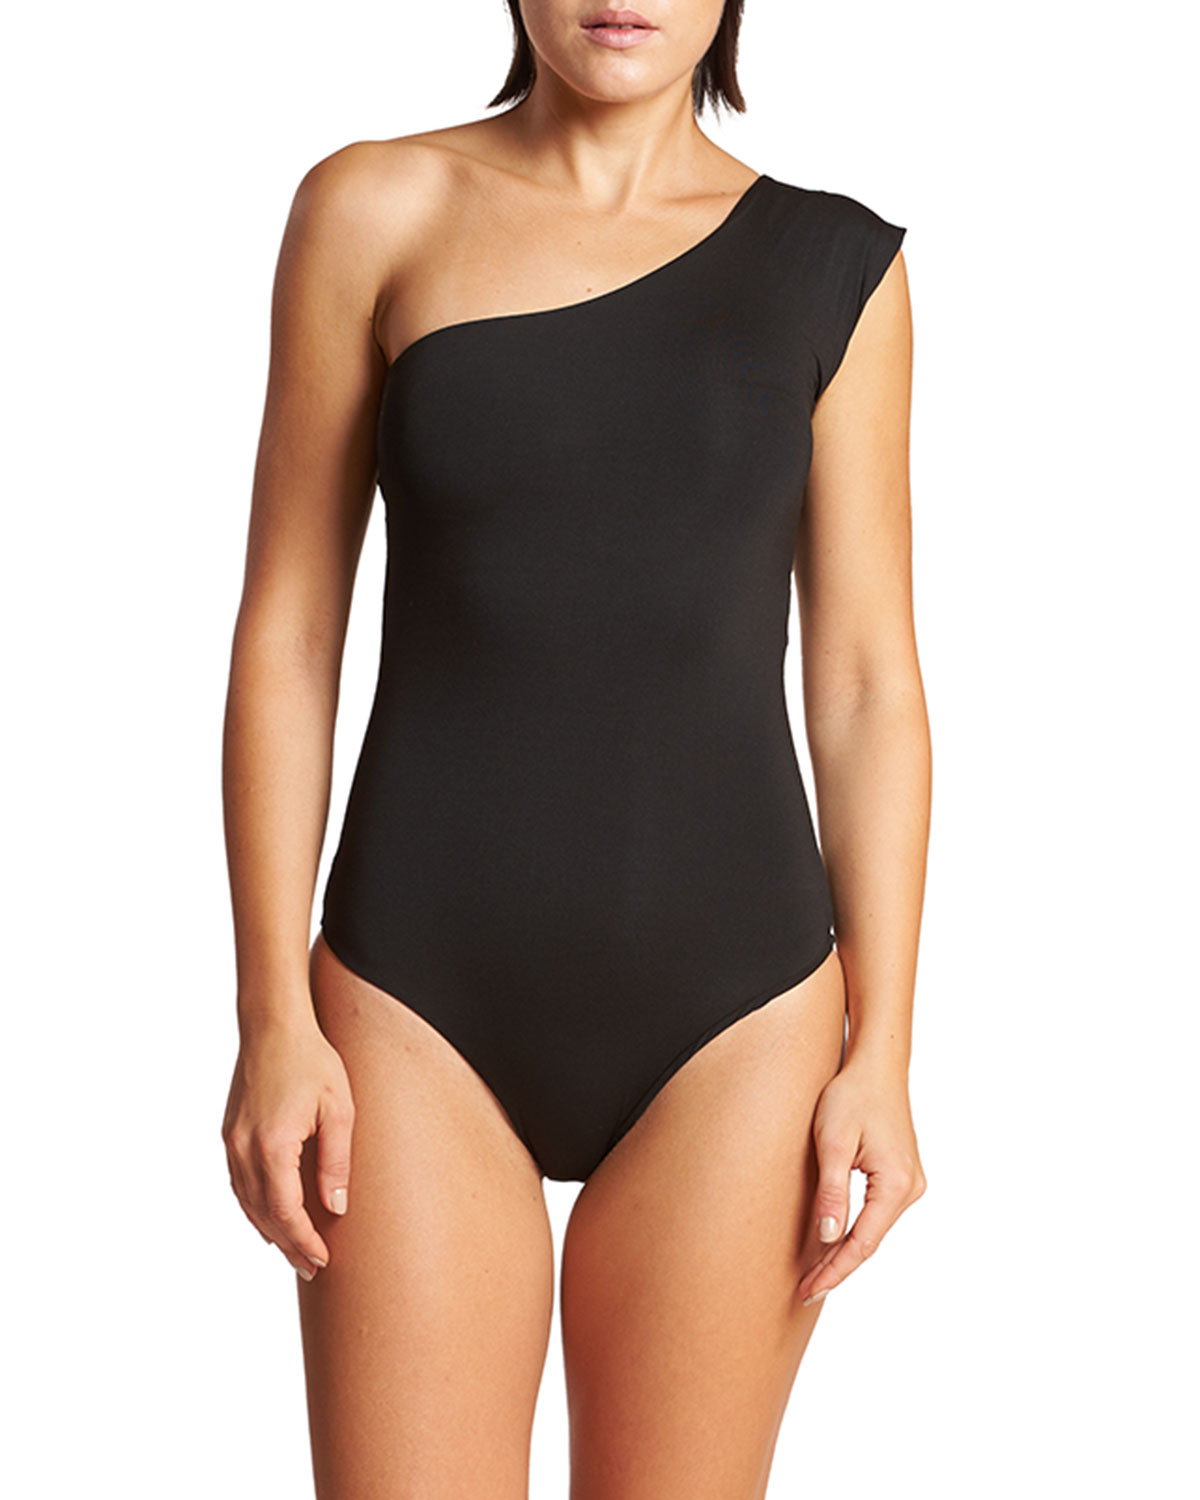 Caliope One-Shoulder One-Piece Swimsuit